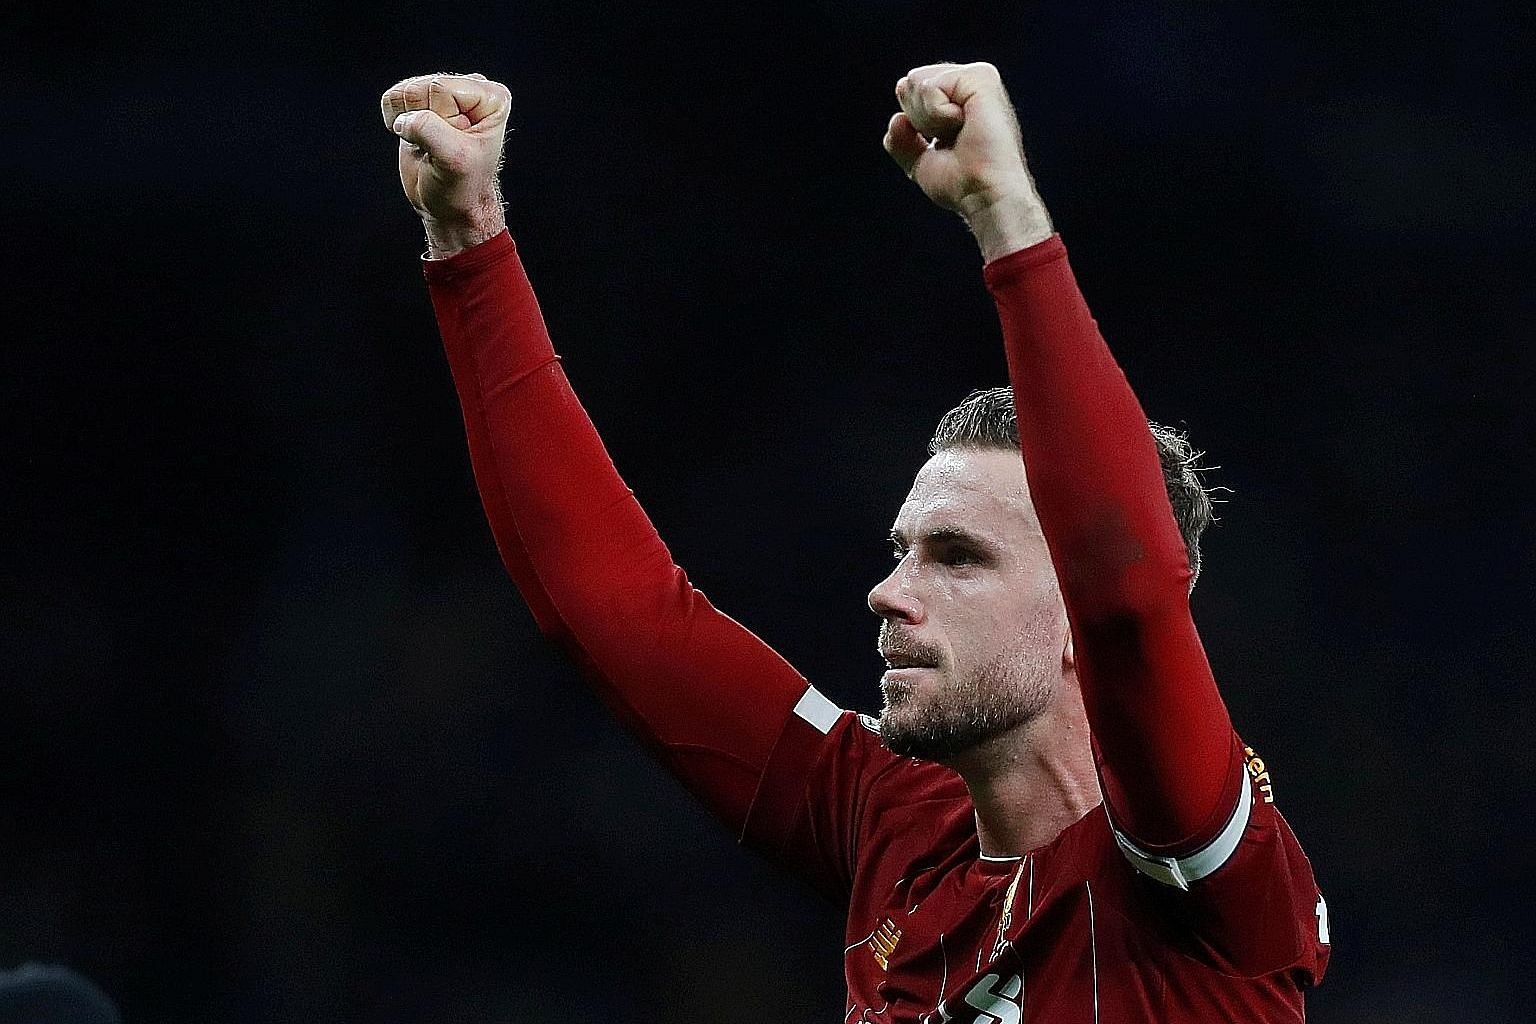 Liverpool captain Jordan Henderson is one of the Premier League footballers spending their downtime arranging fund-raisers for the NHS.